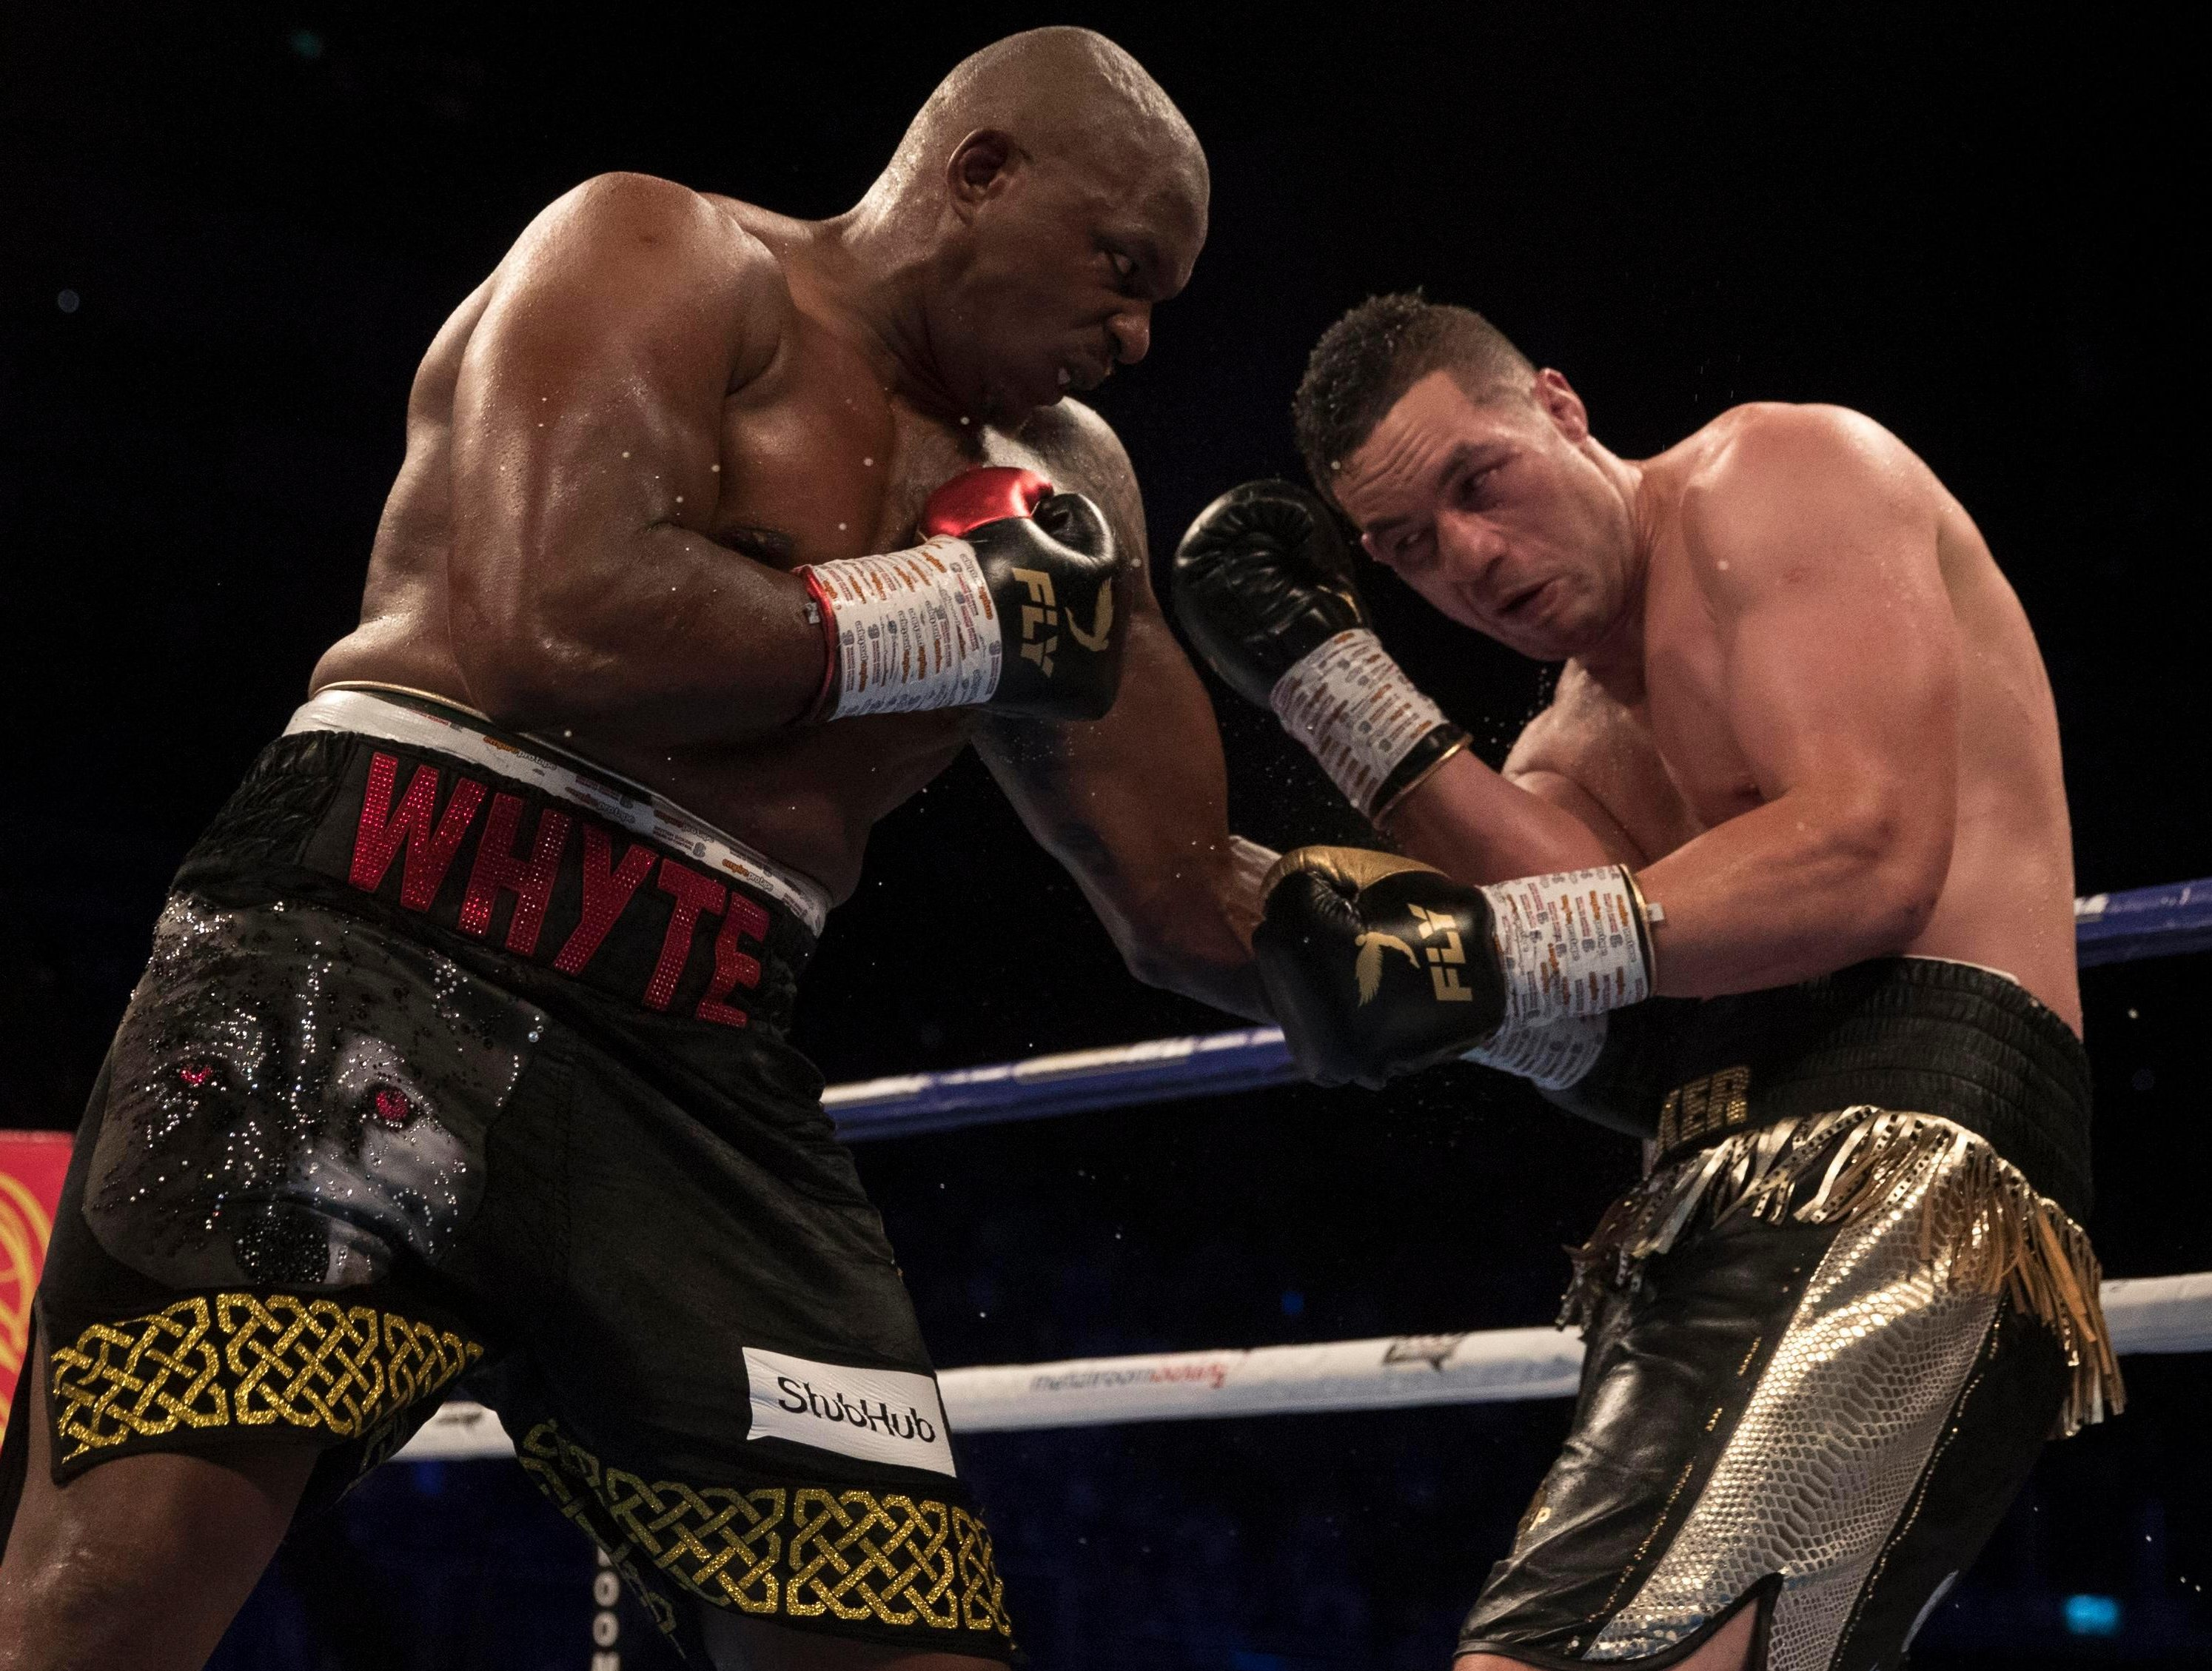 Joseph Parker says it was a great fight against Dillian Whyte on Saturday but he was just unable to execute his tactics before losing lost on points